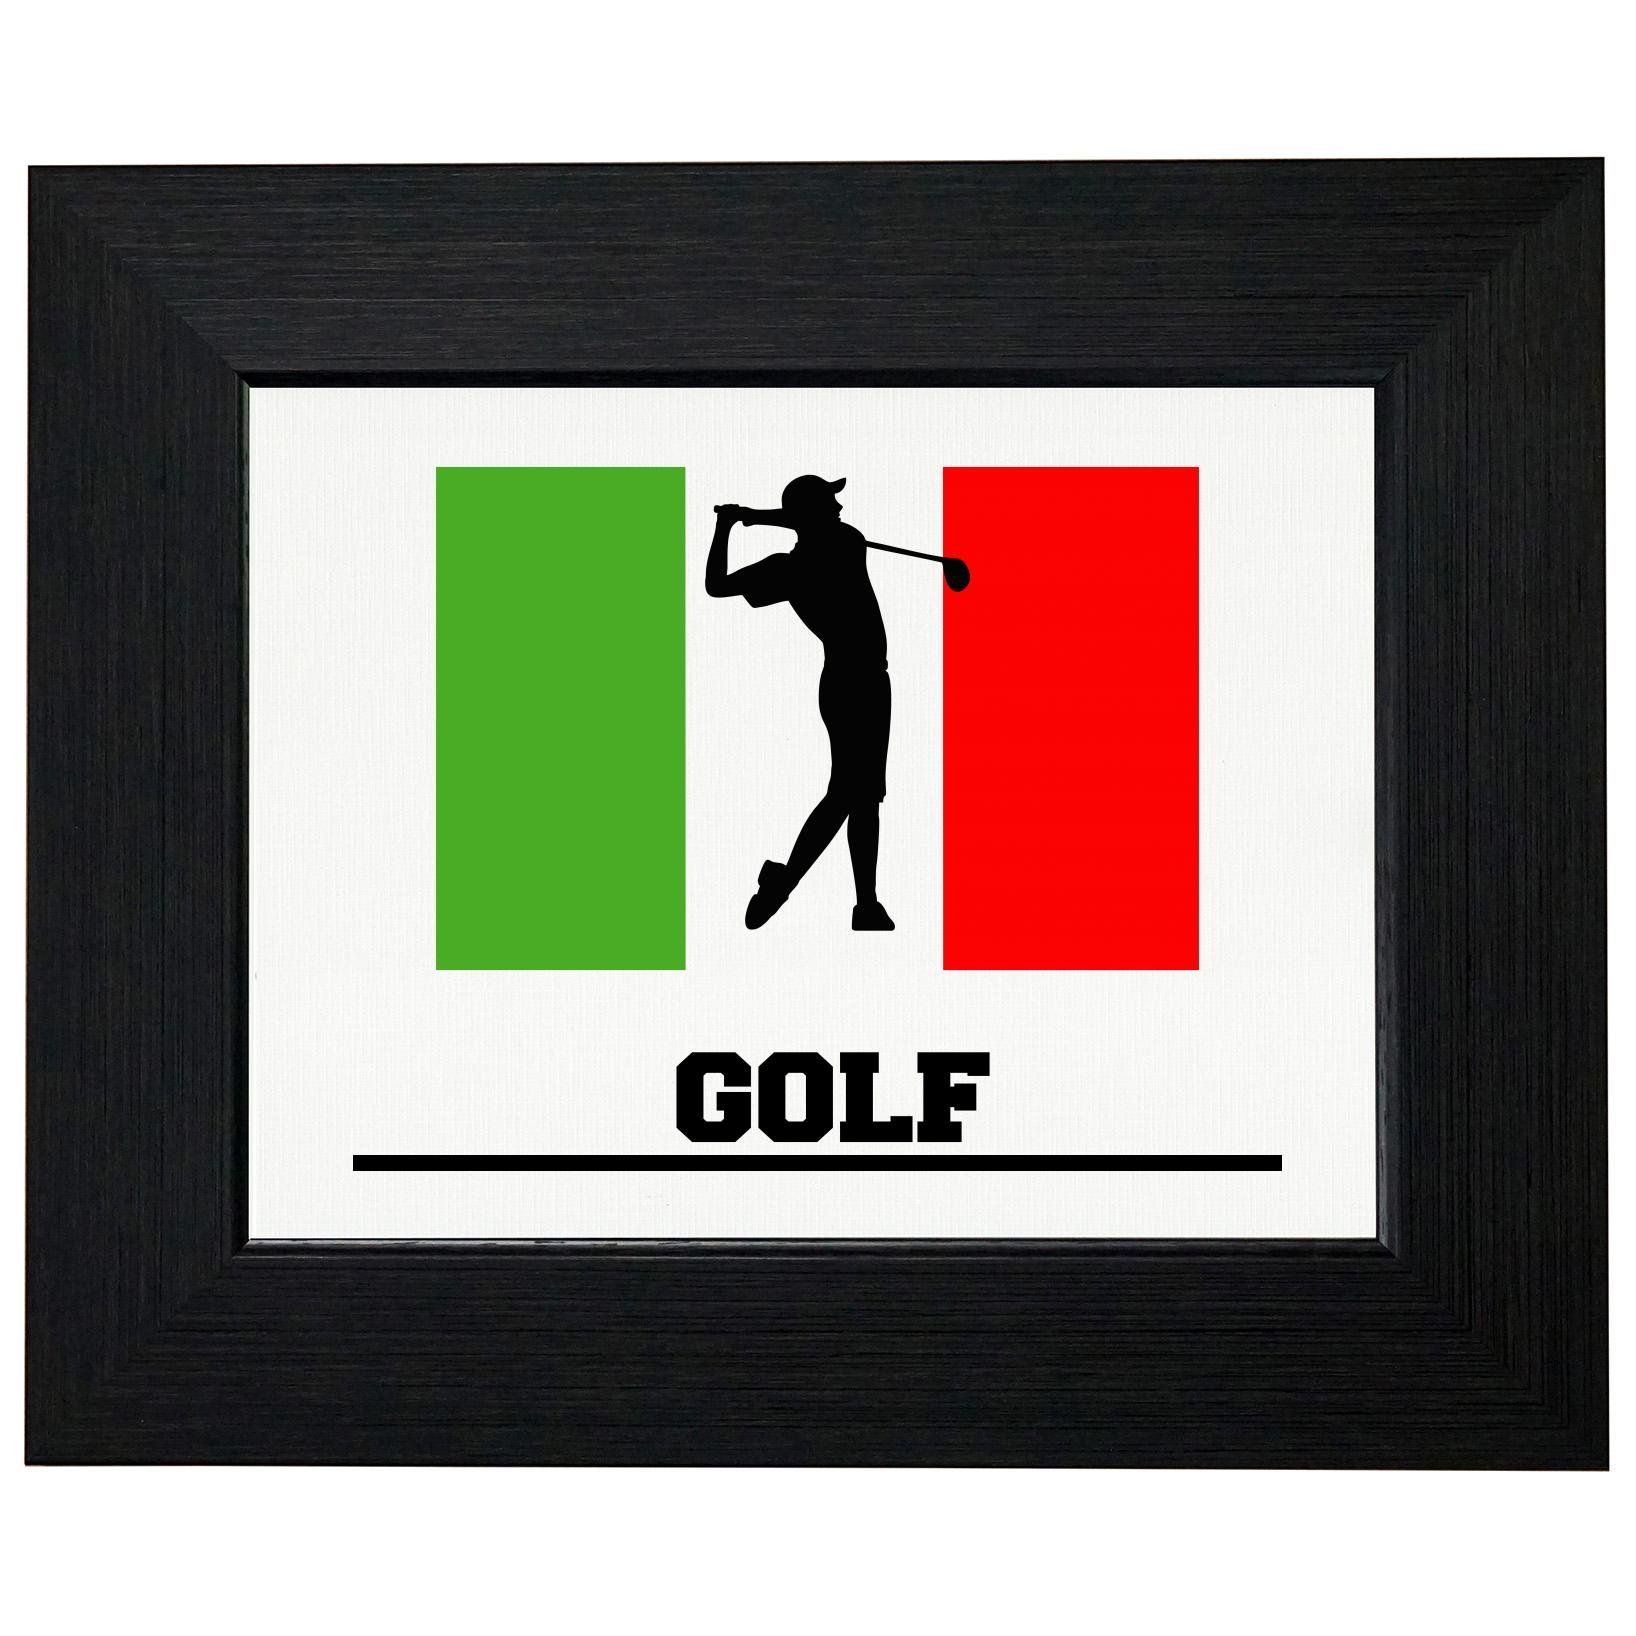 Italy Olympic - Golf - Flag - Silhouette Framed Print Poster Wall or Desk Mount Options